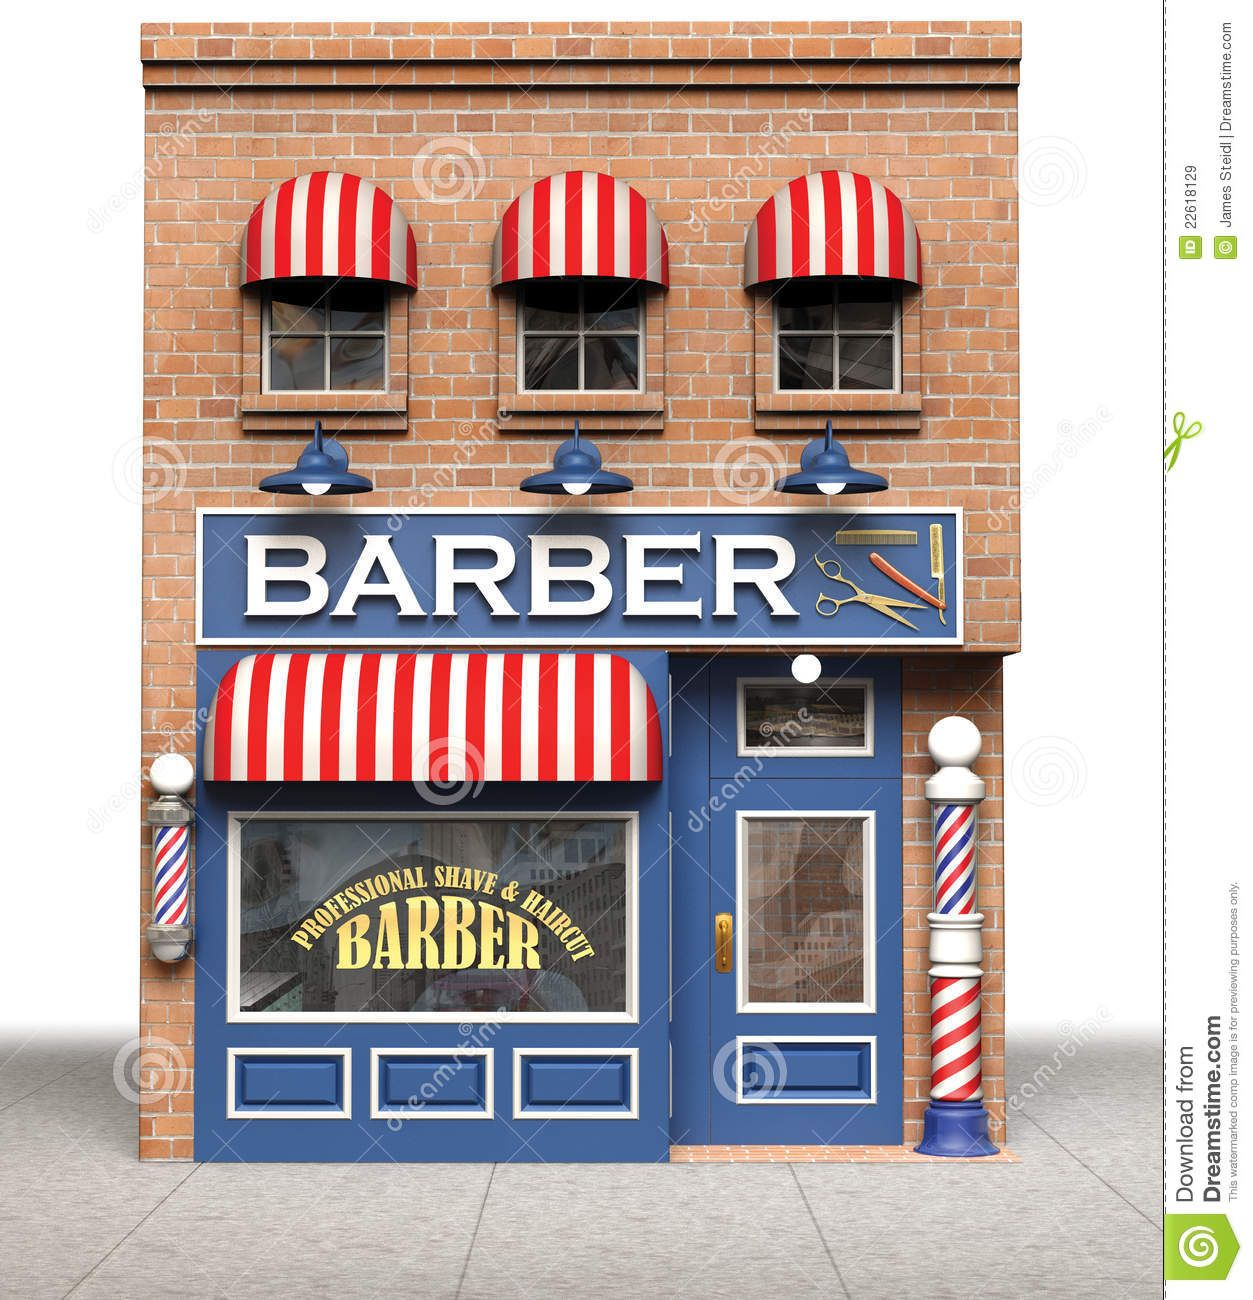 Barber shop clipart free graphic royalty free library Barber Shop - Download From Over 53 Million High Quality Stock ... graphic royalty free library